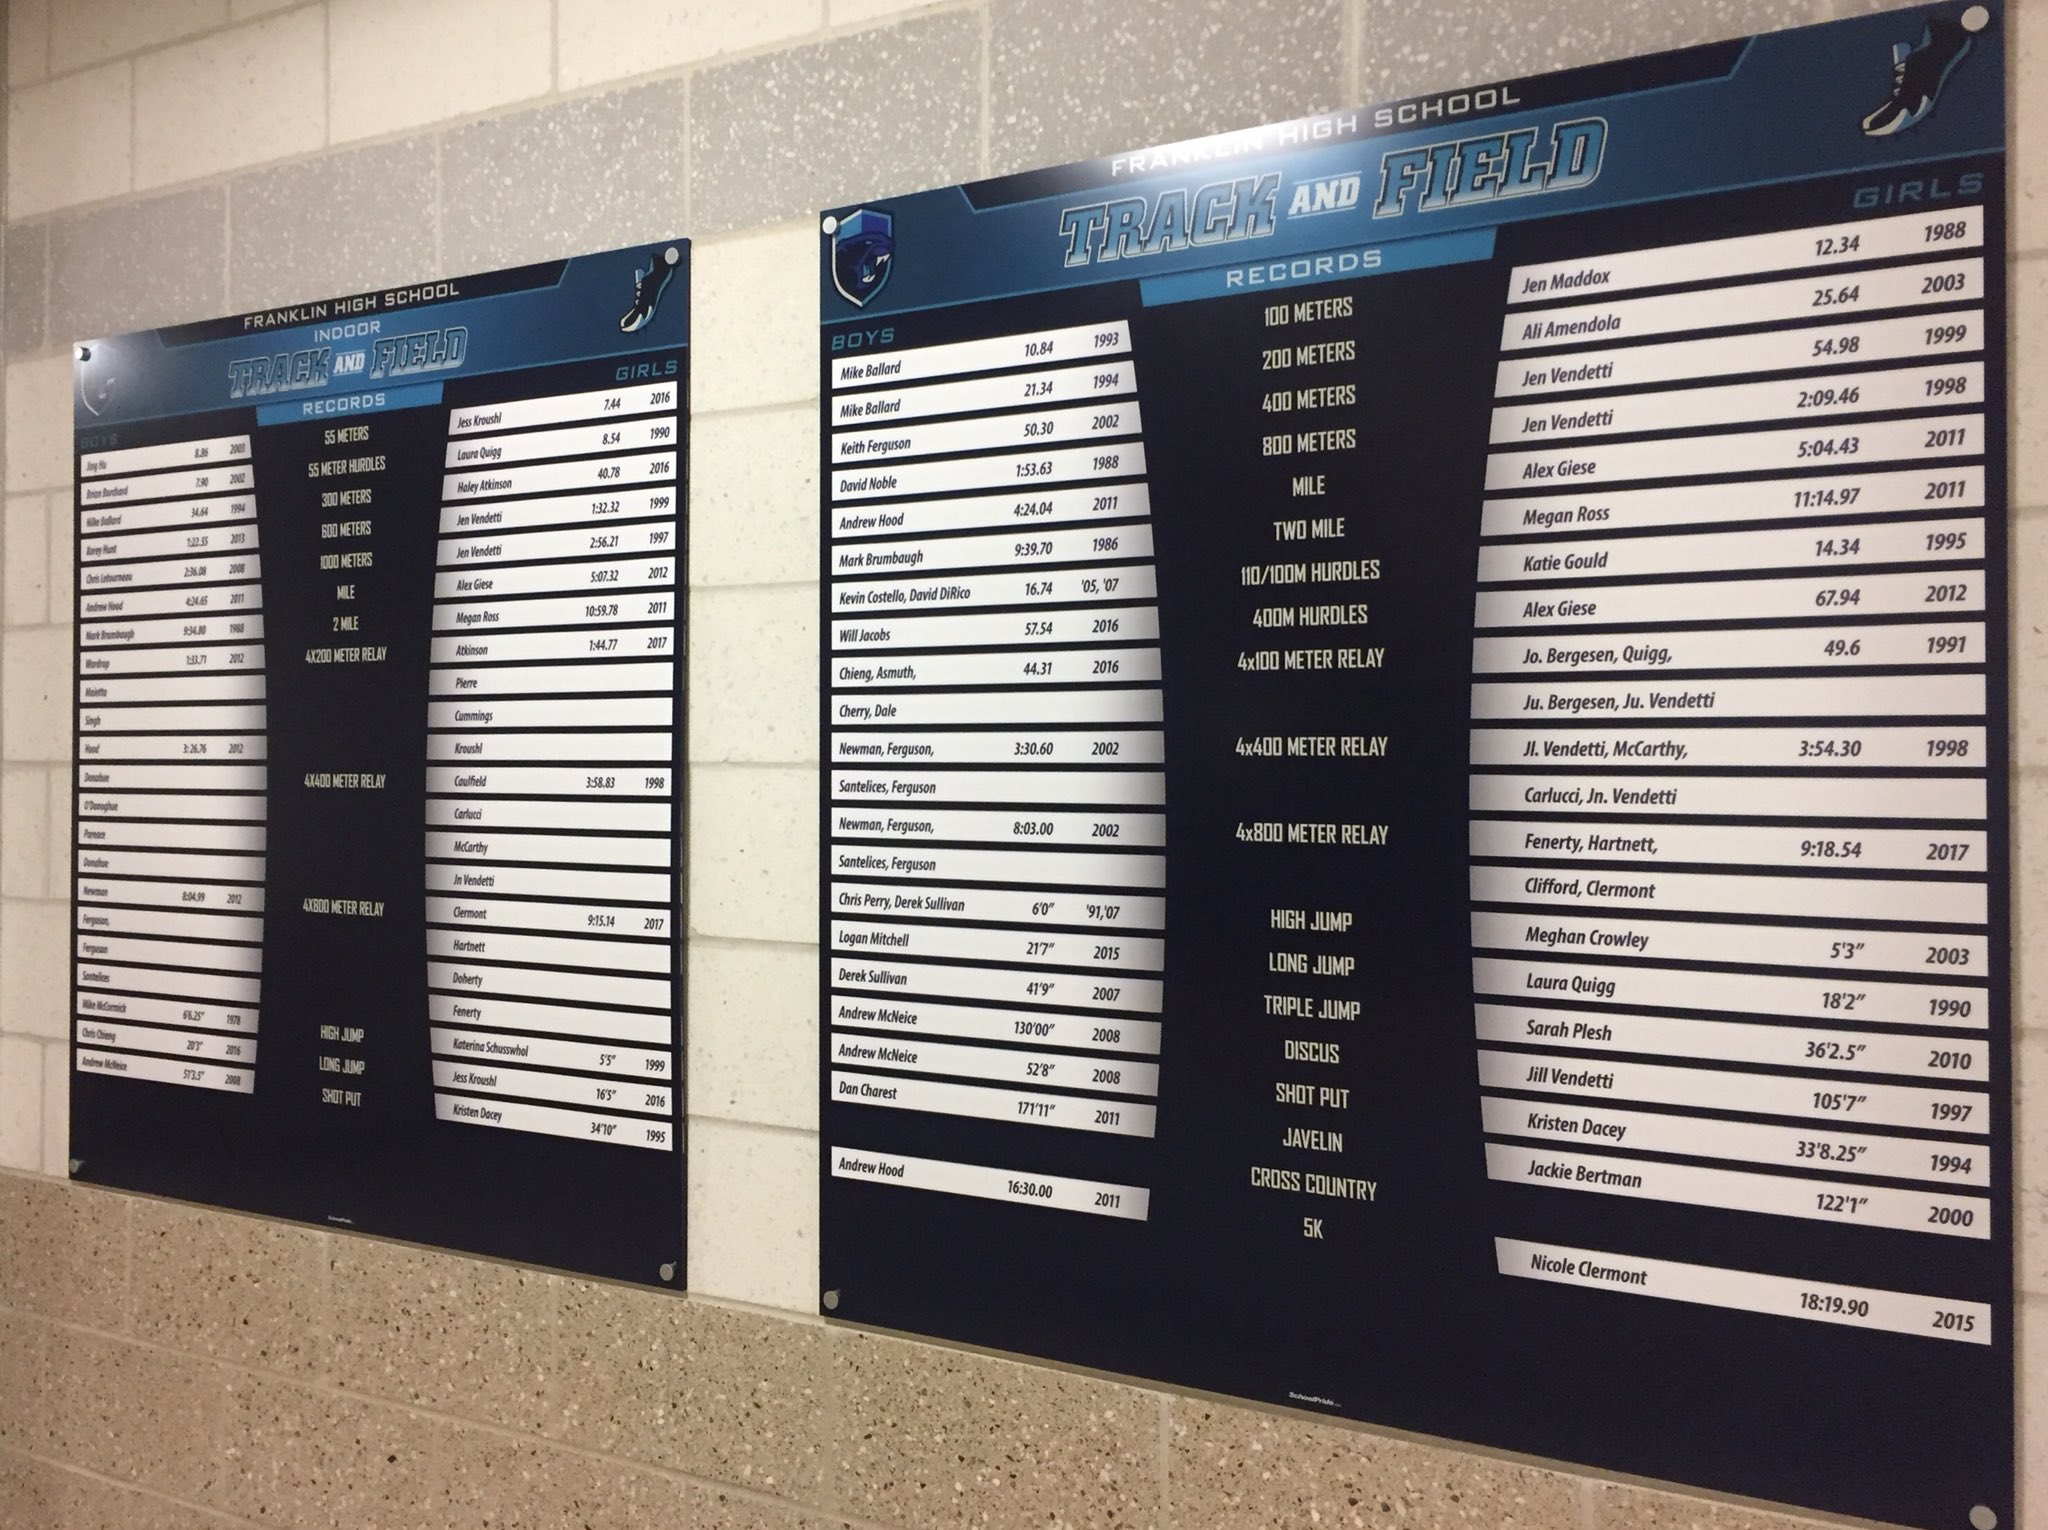 Franklin Athletics proudly displaying the names of our Track & Field, Indoor and XC record holders! Thank you Track Boosters for making this possible! @FHSPanthersTF @FHS_girlsXC #PantherPride